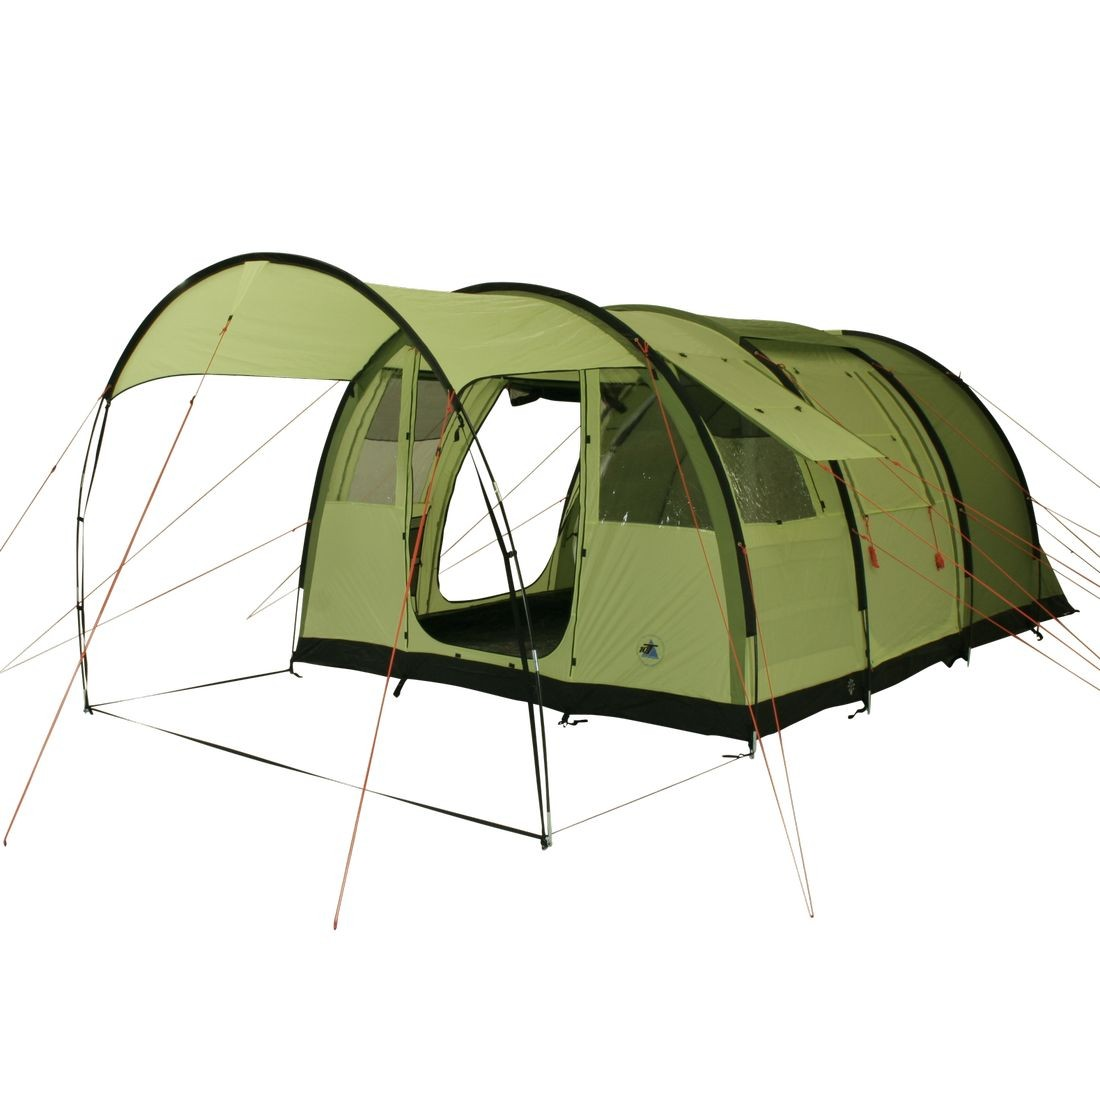 10T Outdoor Equipment - LEIGHTON 4 - Image 1  sc 1 st  C&ing-Outdoor.eu & Buy 10T Leighton 4 - Spacious 4-person tunnel tent with large ...